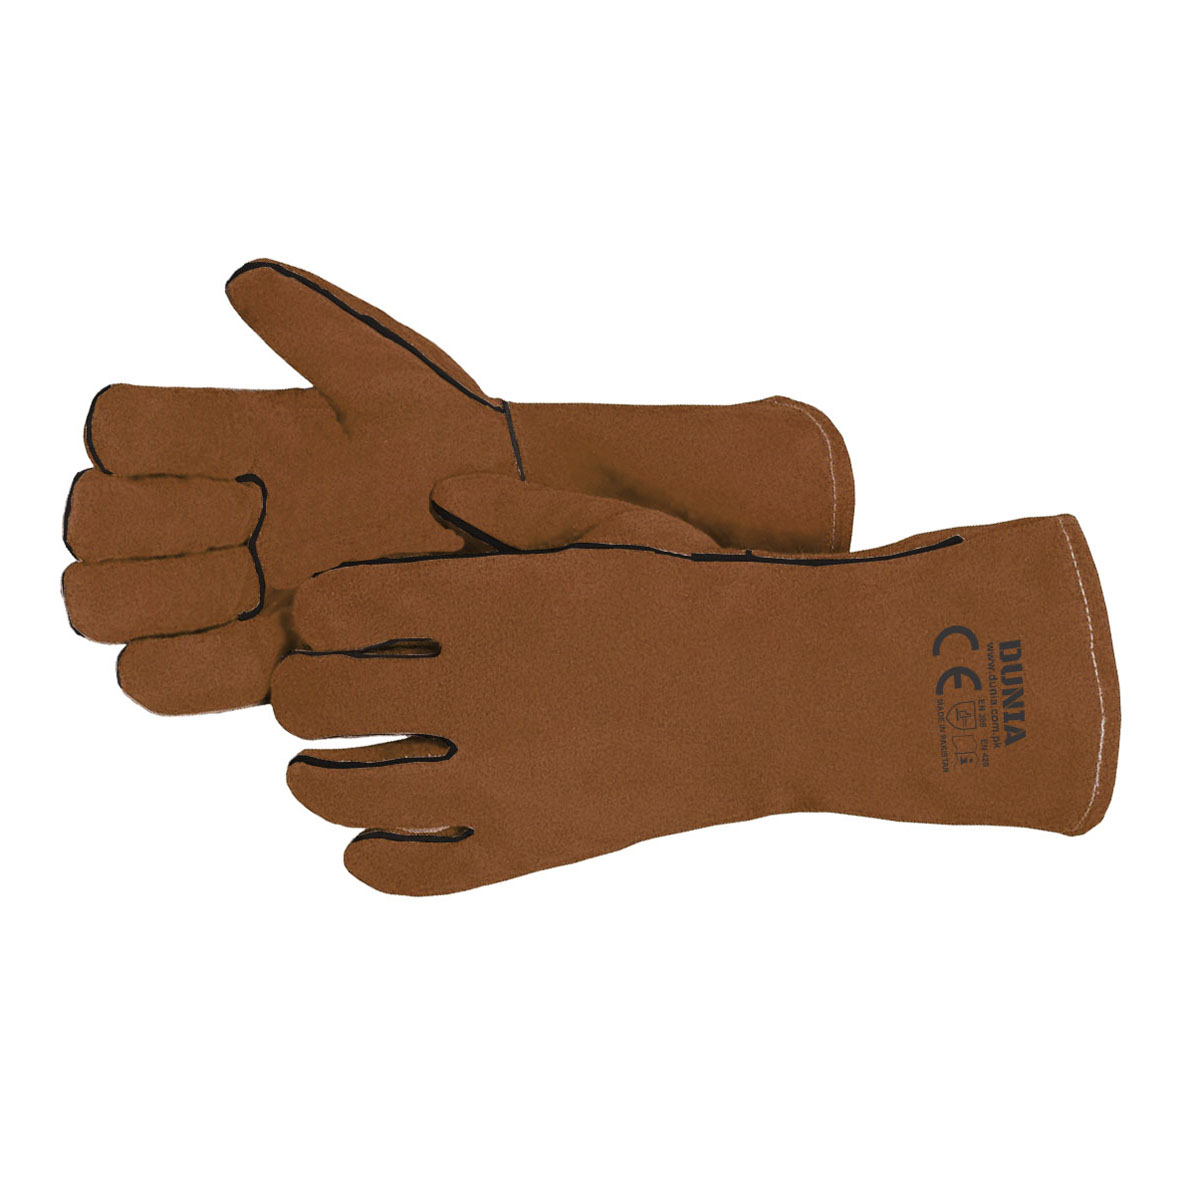 DTC-735-GB Welding Gloves with Piping